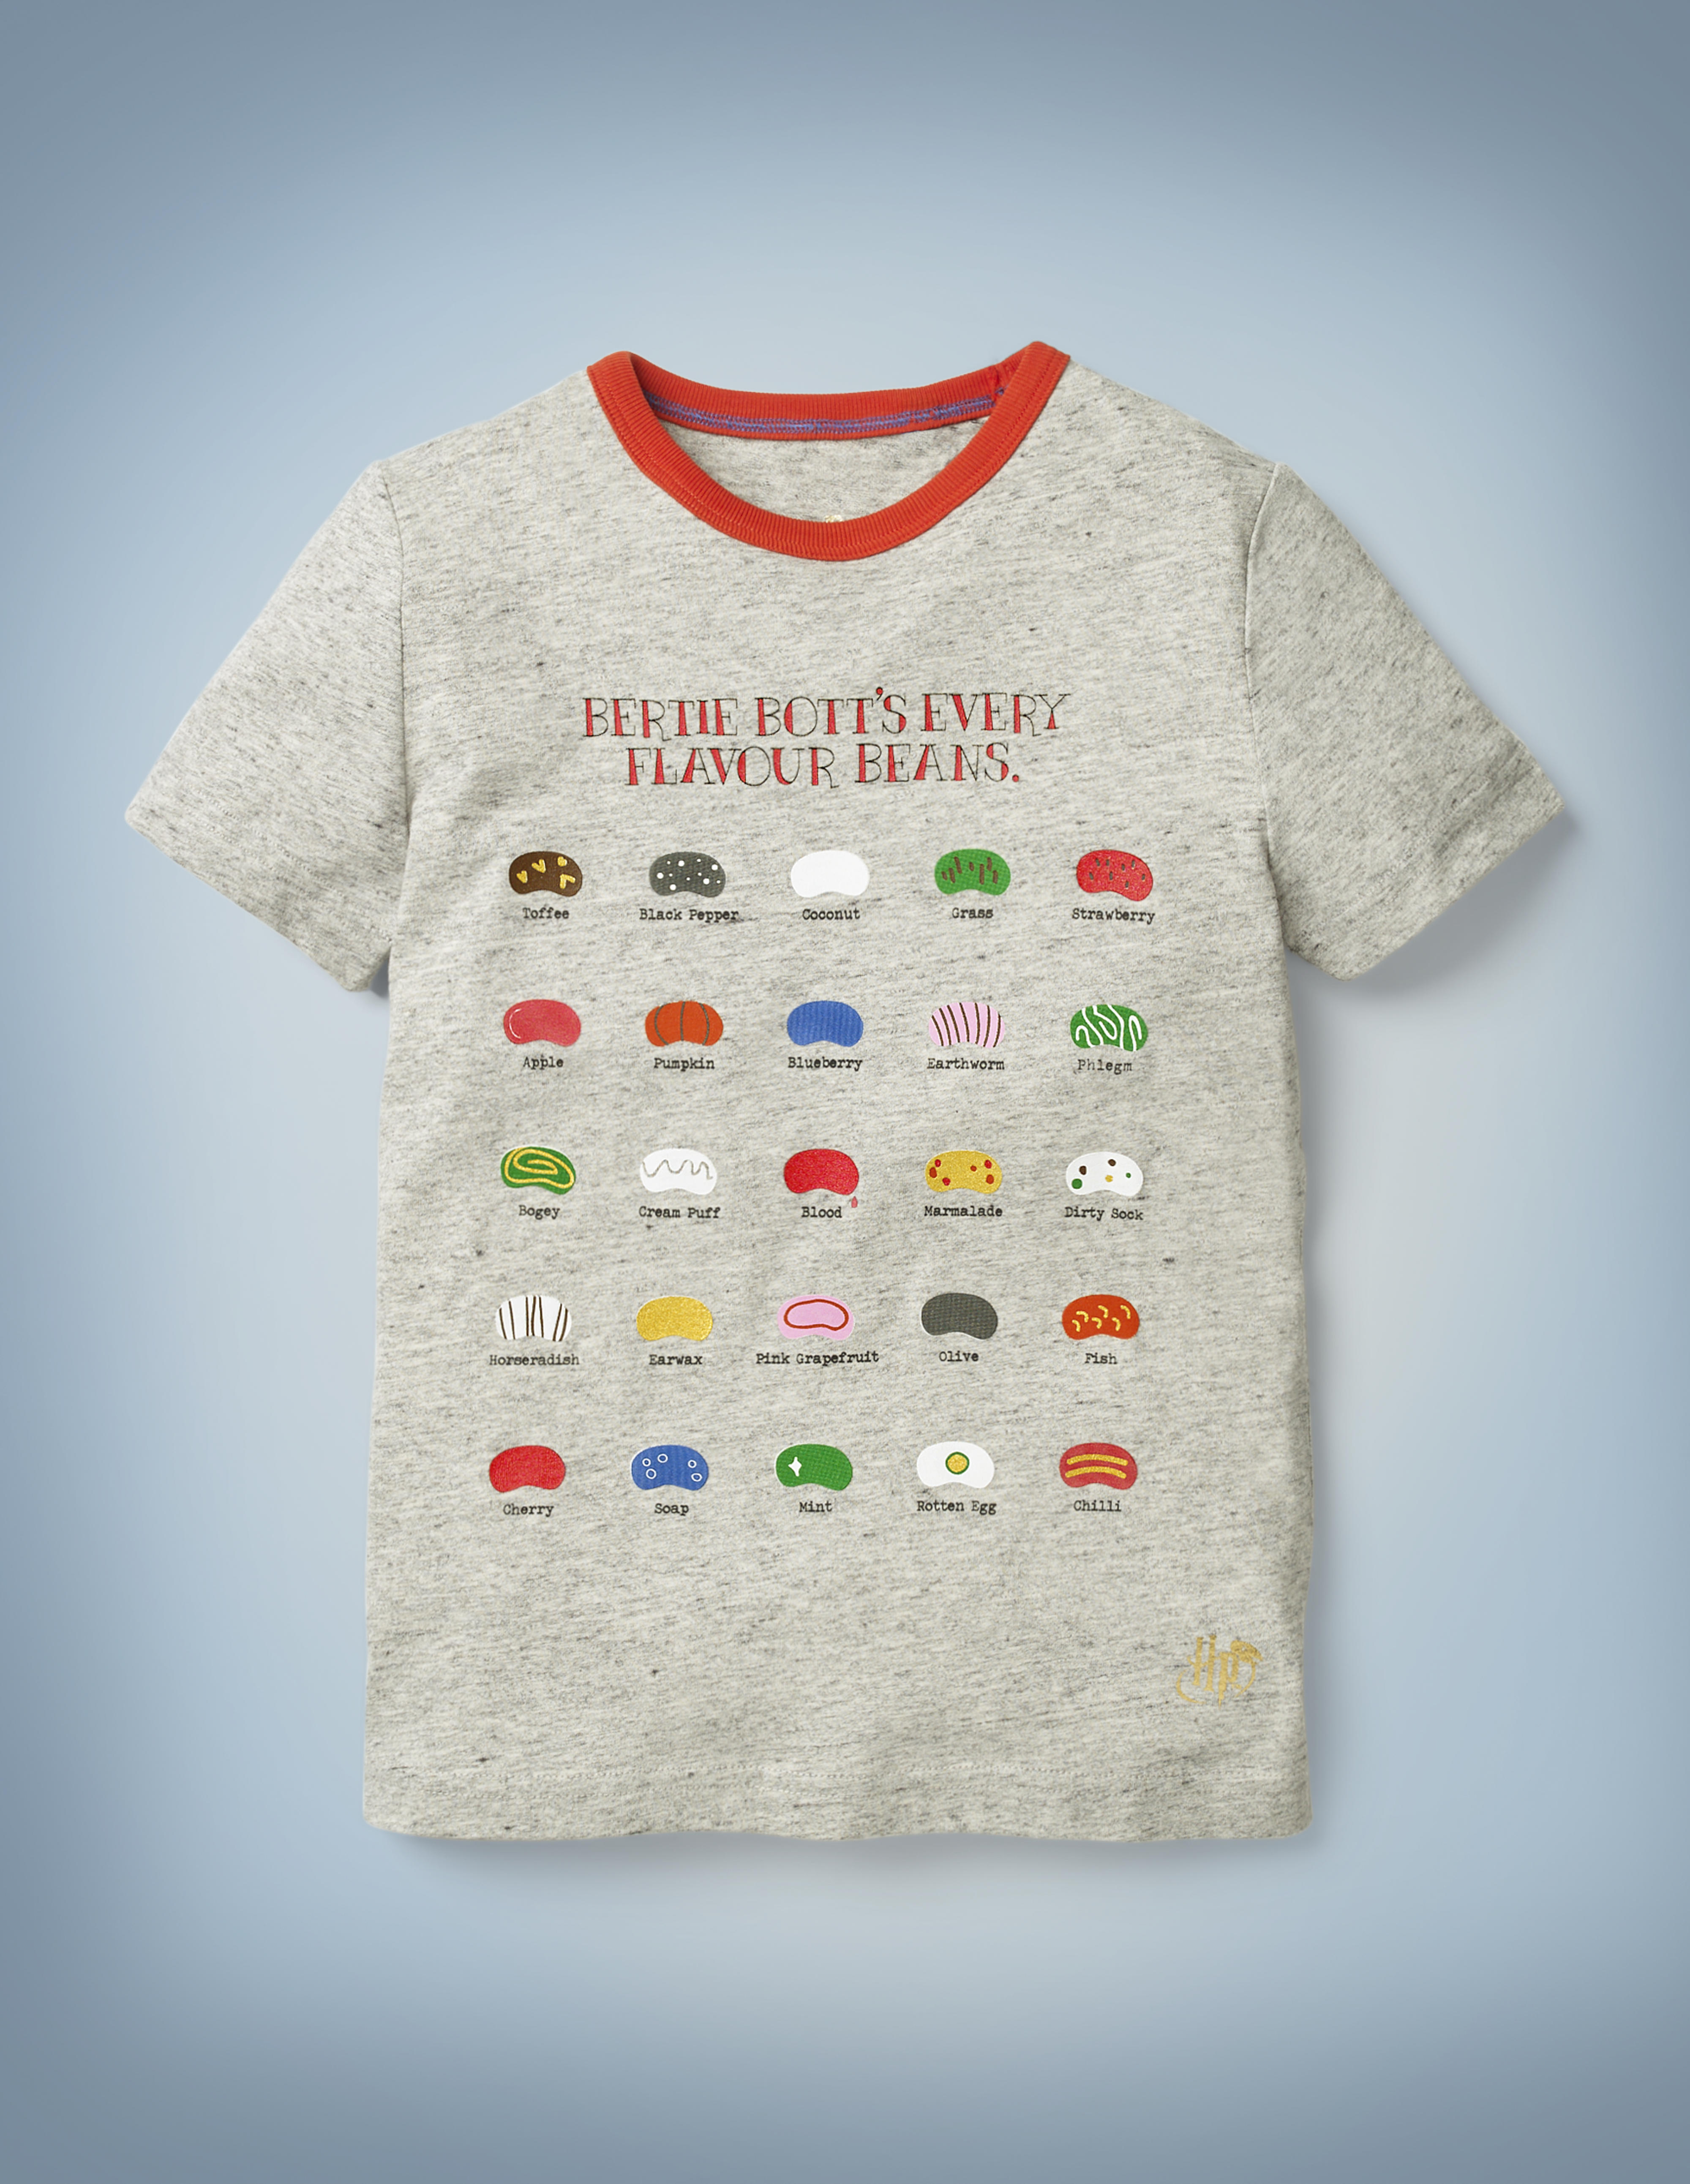 The Mini Boden Bertie Bott's T-shirt in gray sports a graphic design featuring 25 different Bertie Bott's Every Flavour Beans, from toffee to earwax. It retails at £18.